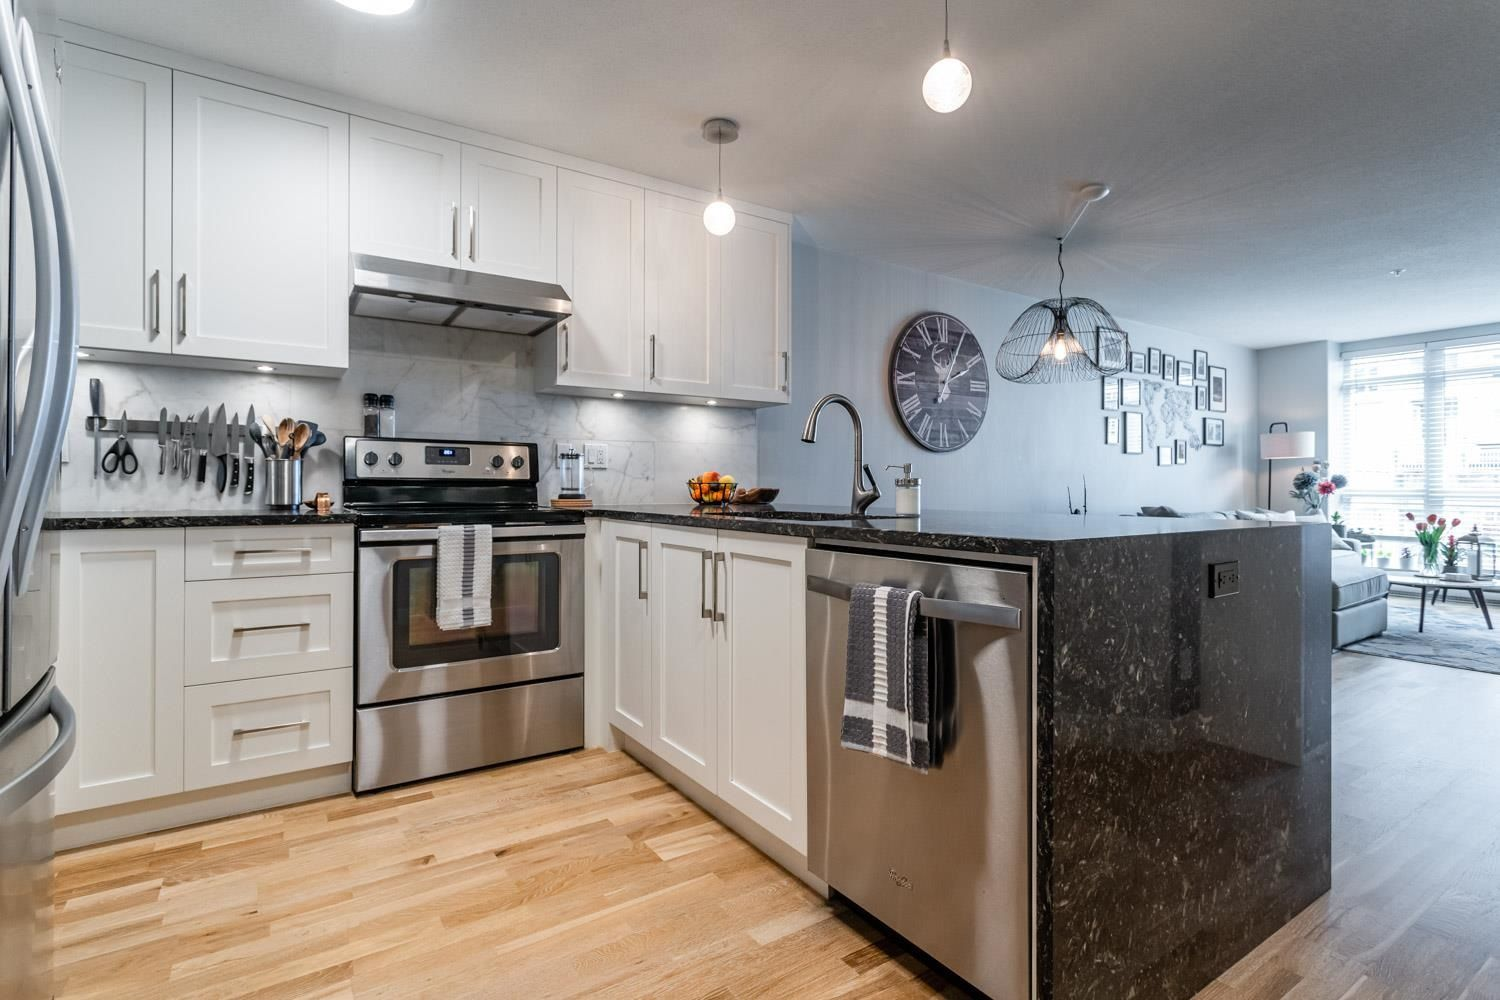 """Main Photo: 206 3142 ST JOHNS Street in Port Moody: Port Moody Centre Condo for sale in """"SONRISA"""" : MLS®# R2602260"""